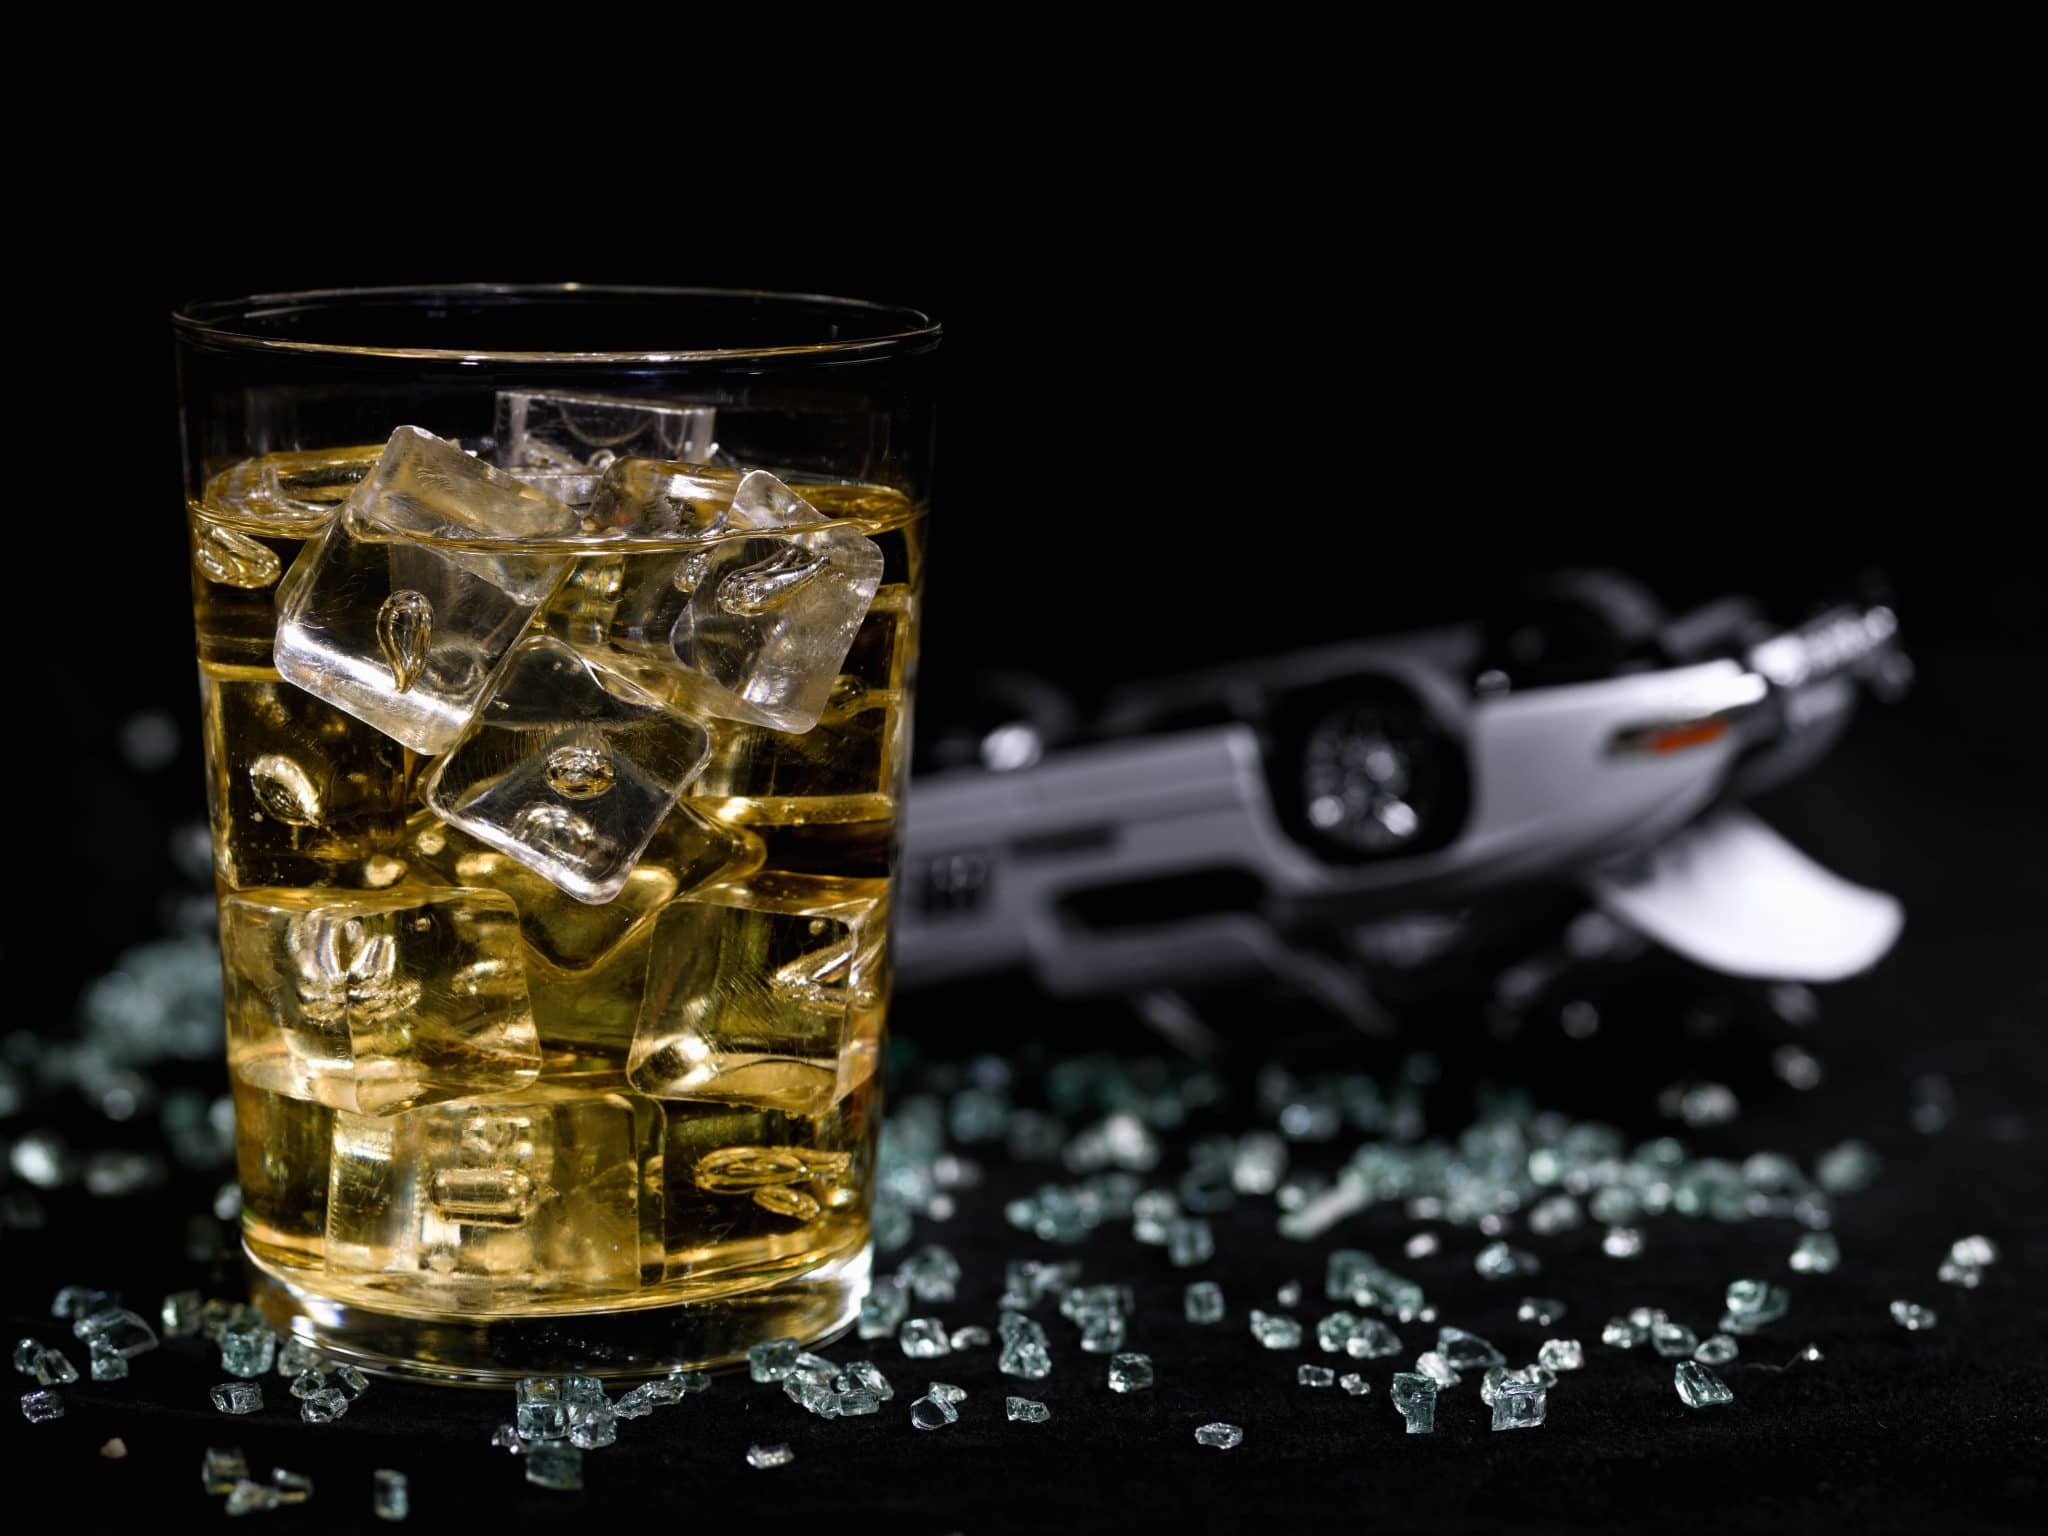 Drinking and Driving Consequences and Effects: How to Avoid